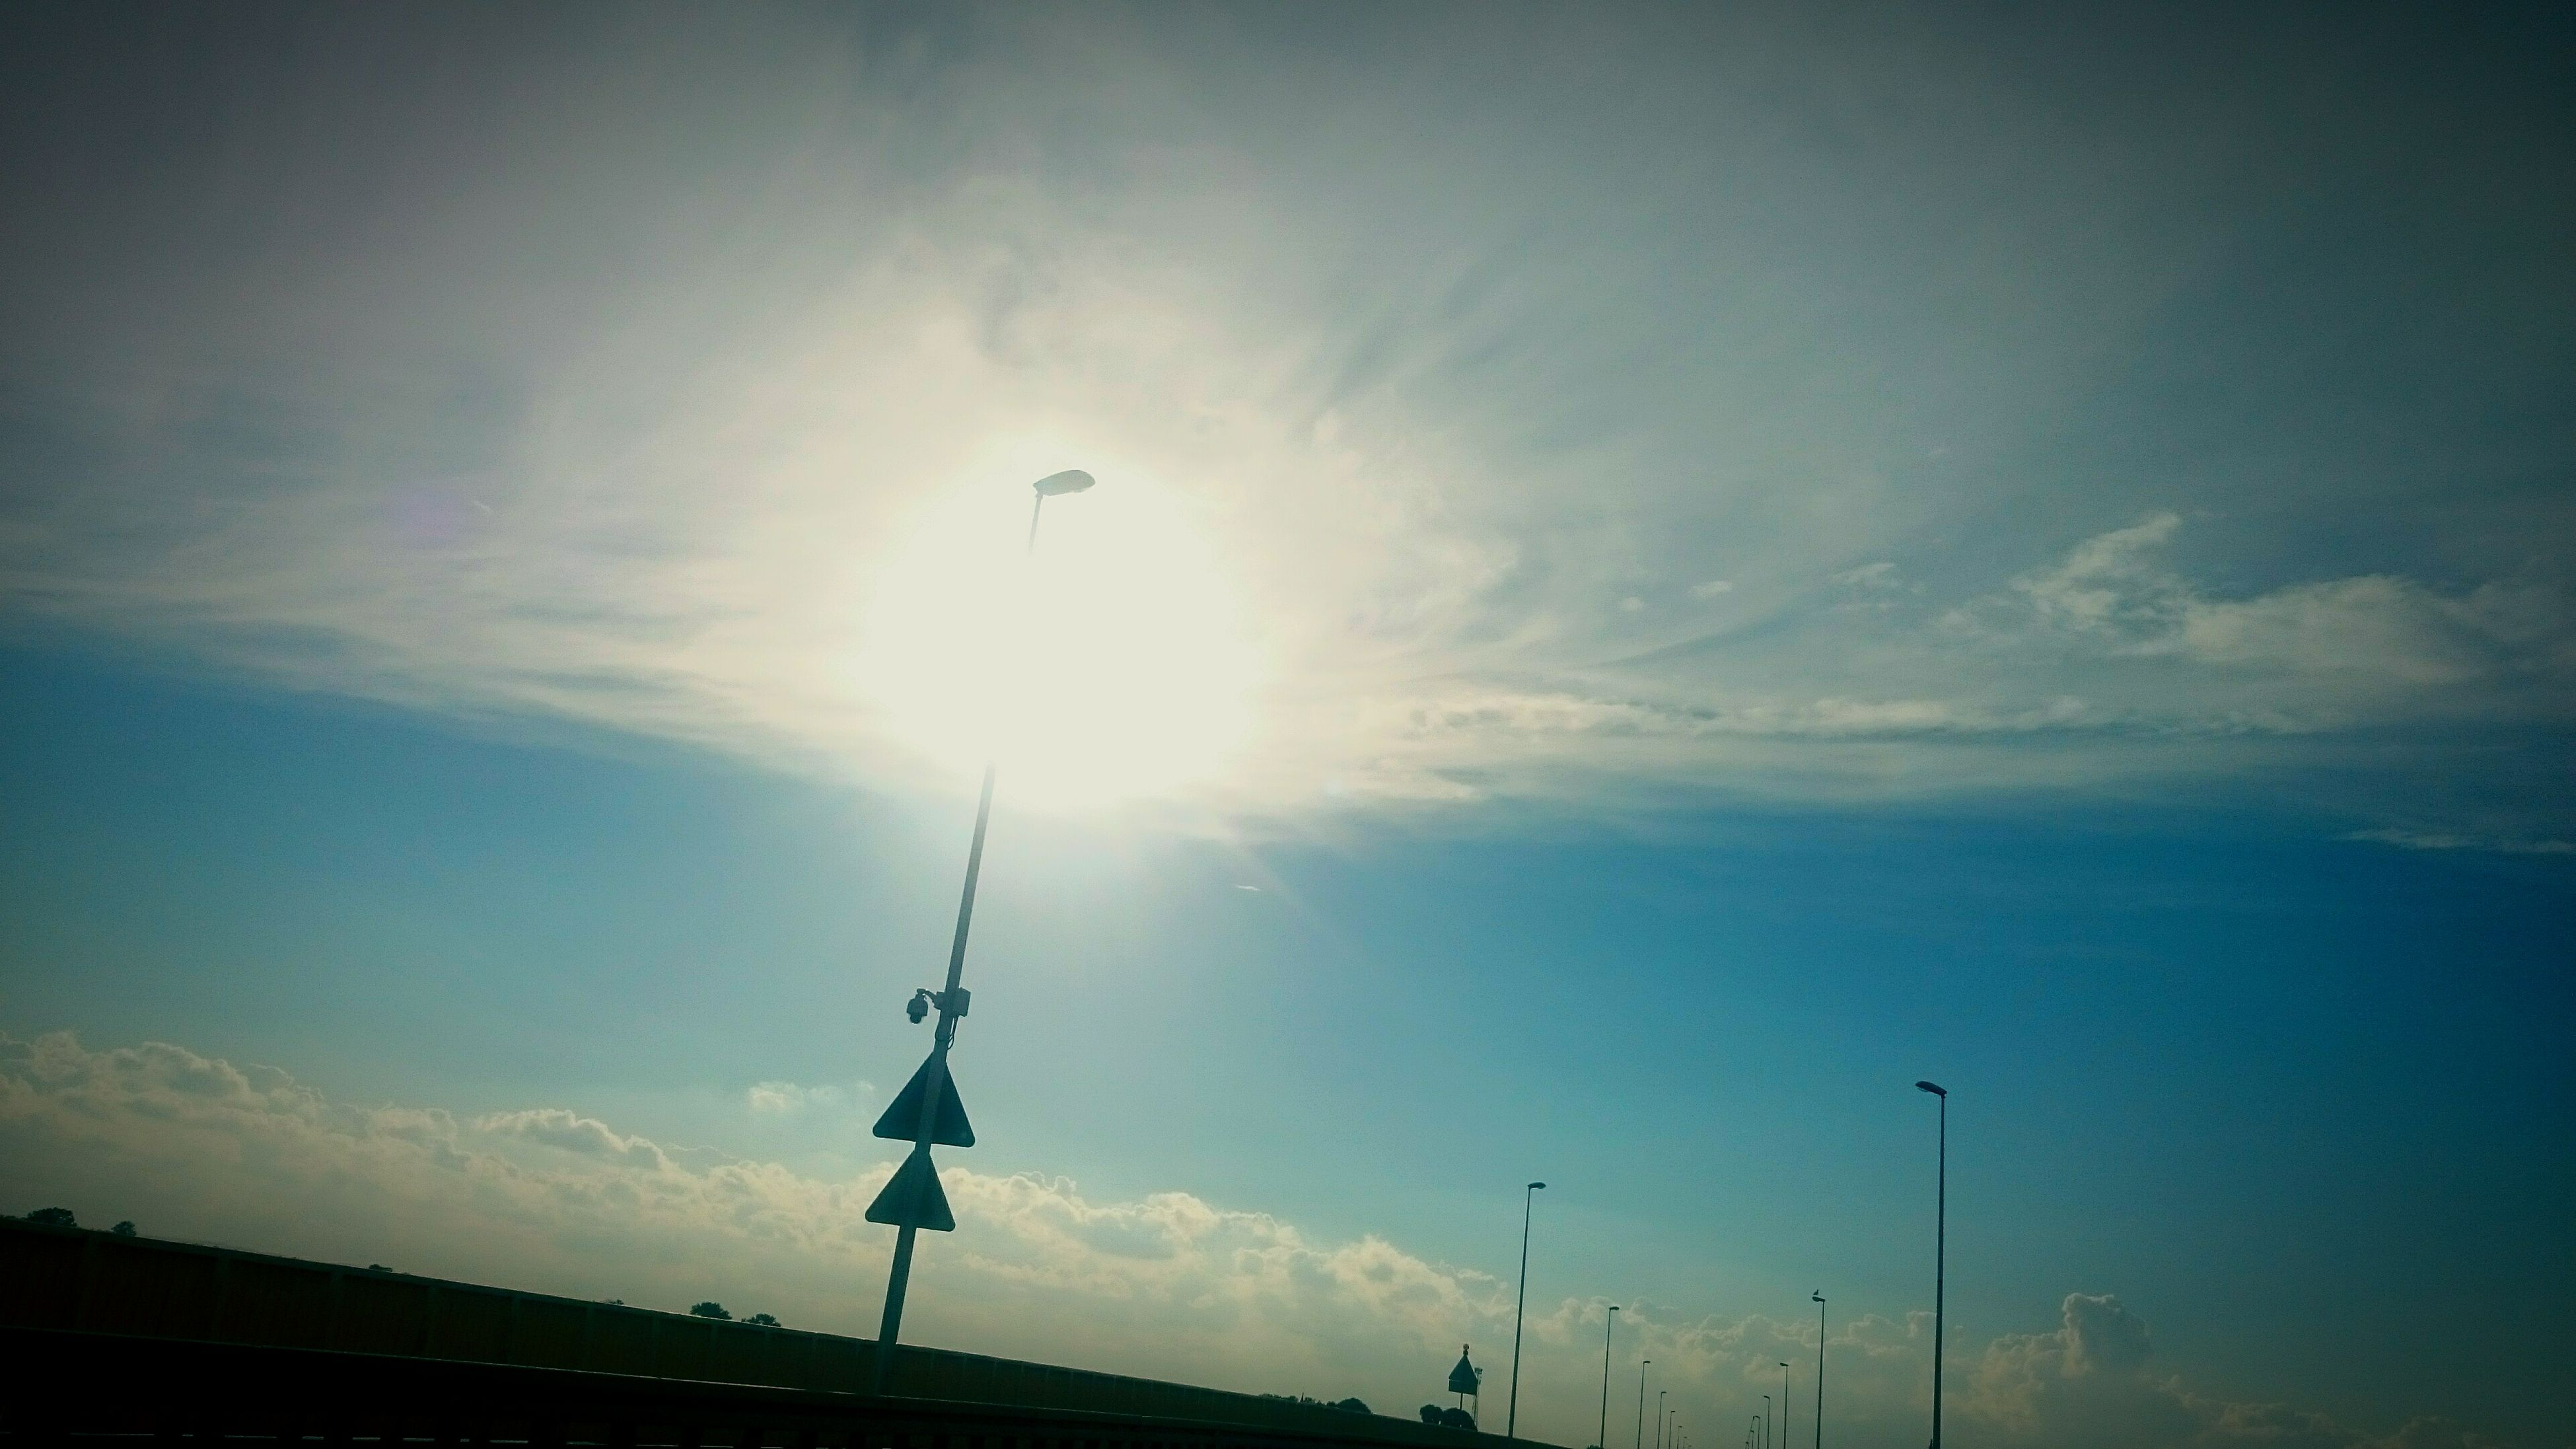 sky, silhouette, sun, low angle view, no people, nature, sunset, outdoors, beauty in nature, day